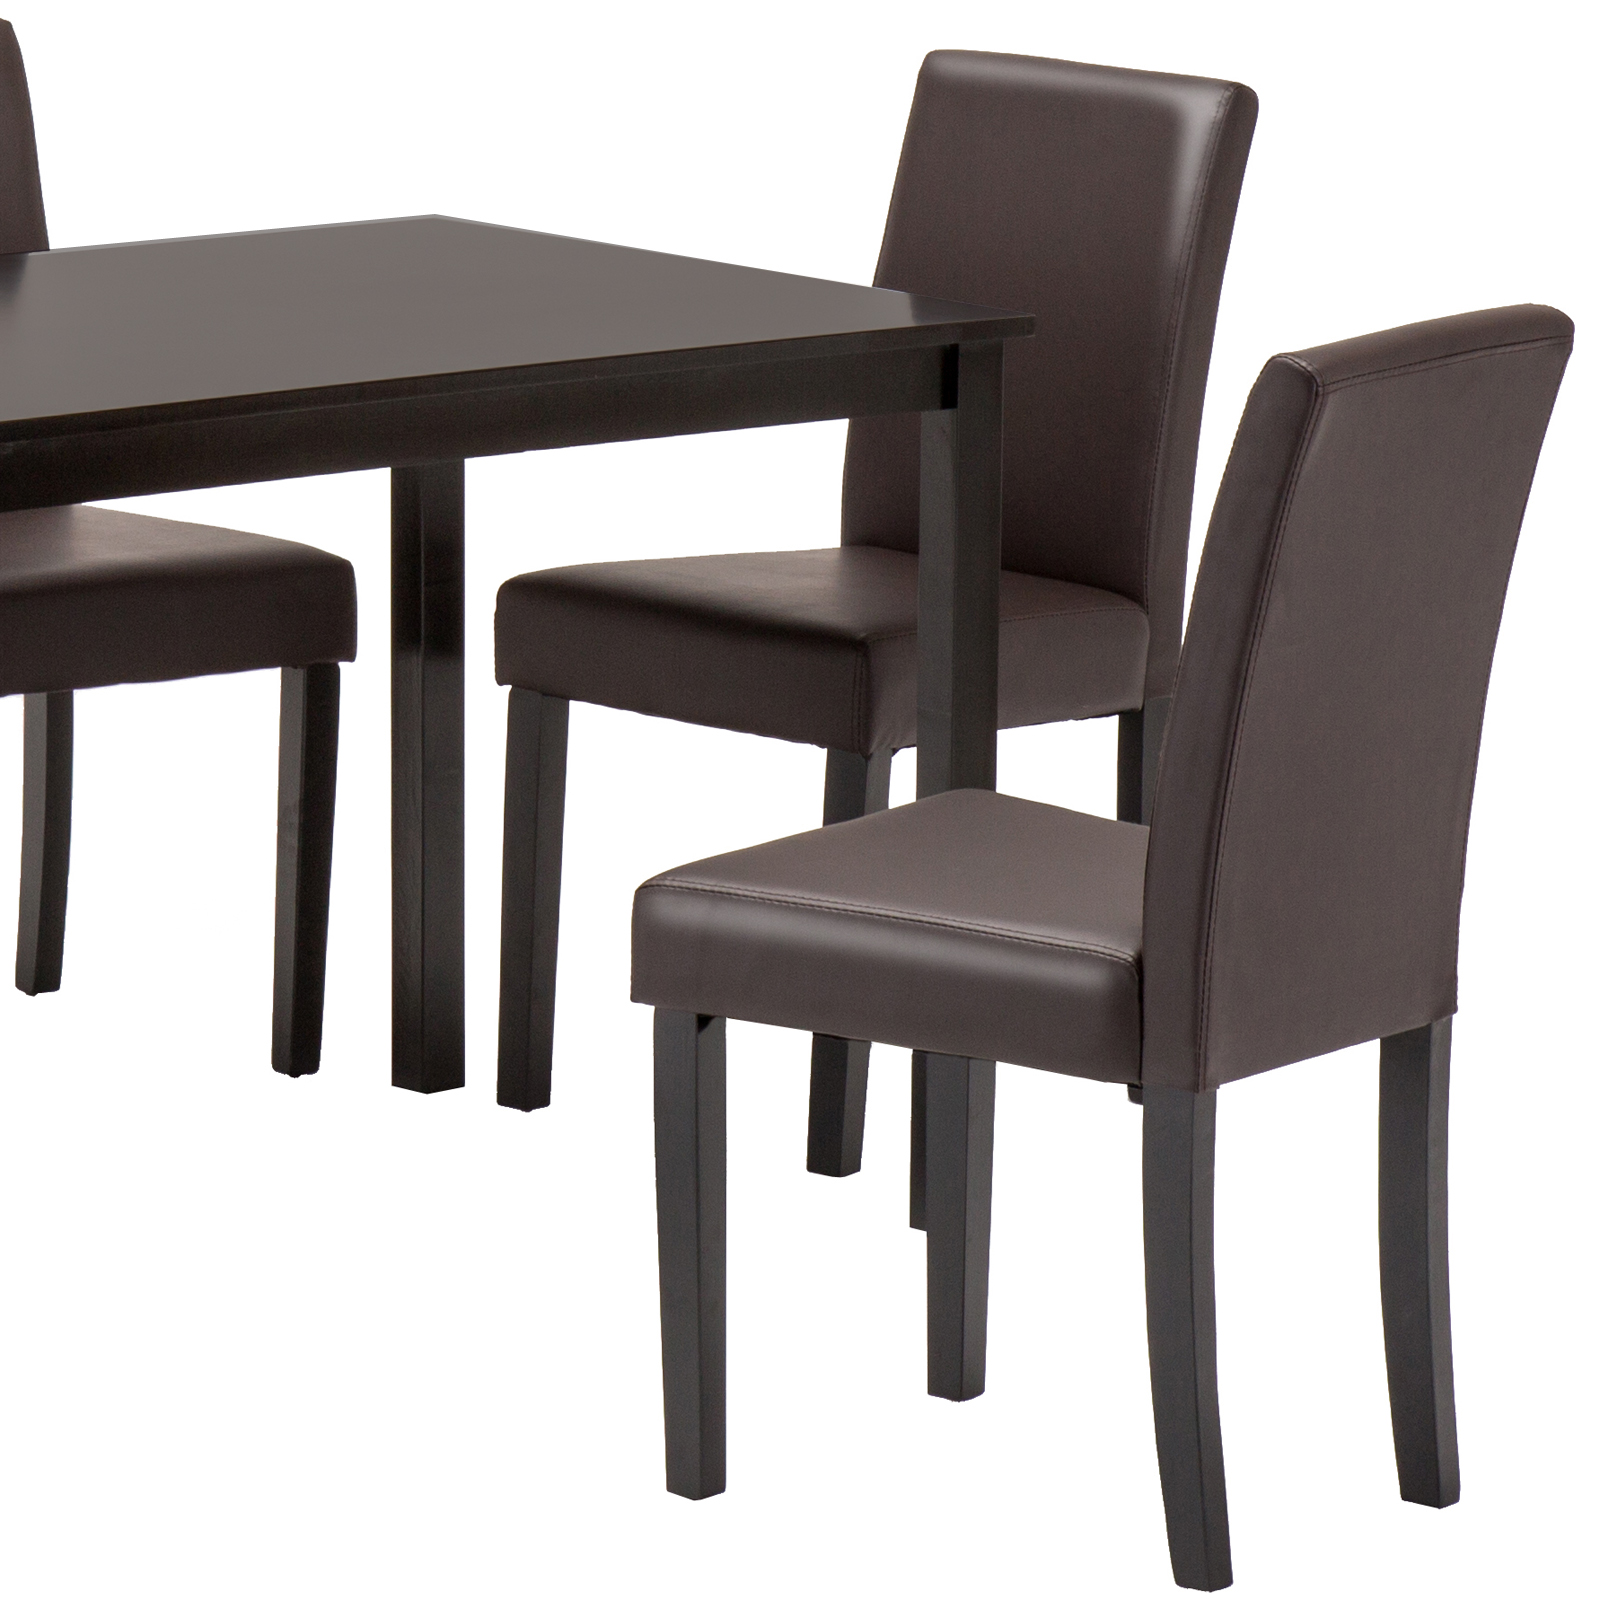 Dining Room Exciting Kitchen Table With Bench And Chairs: 5 Piece Wood Dining Table Set 4 Chairs Kitchen Dinette